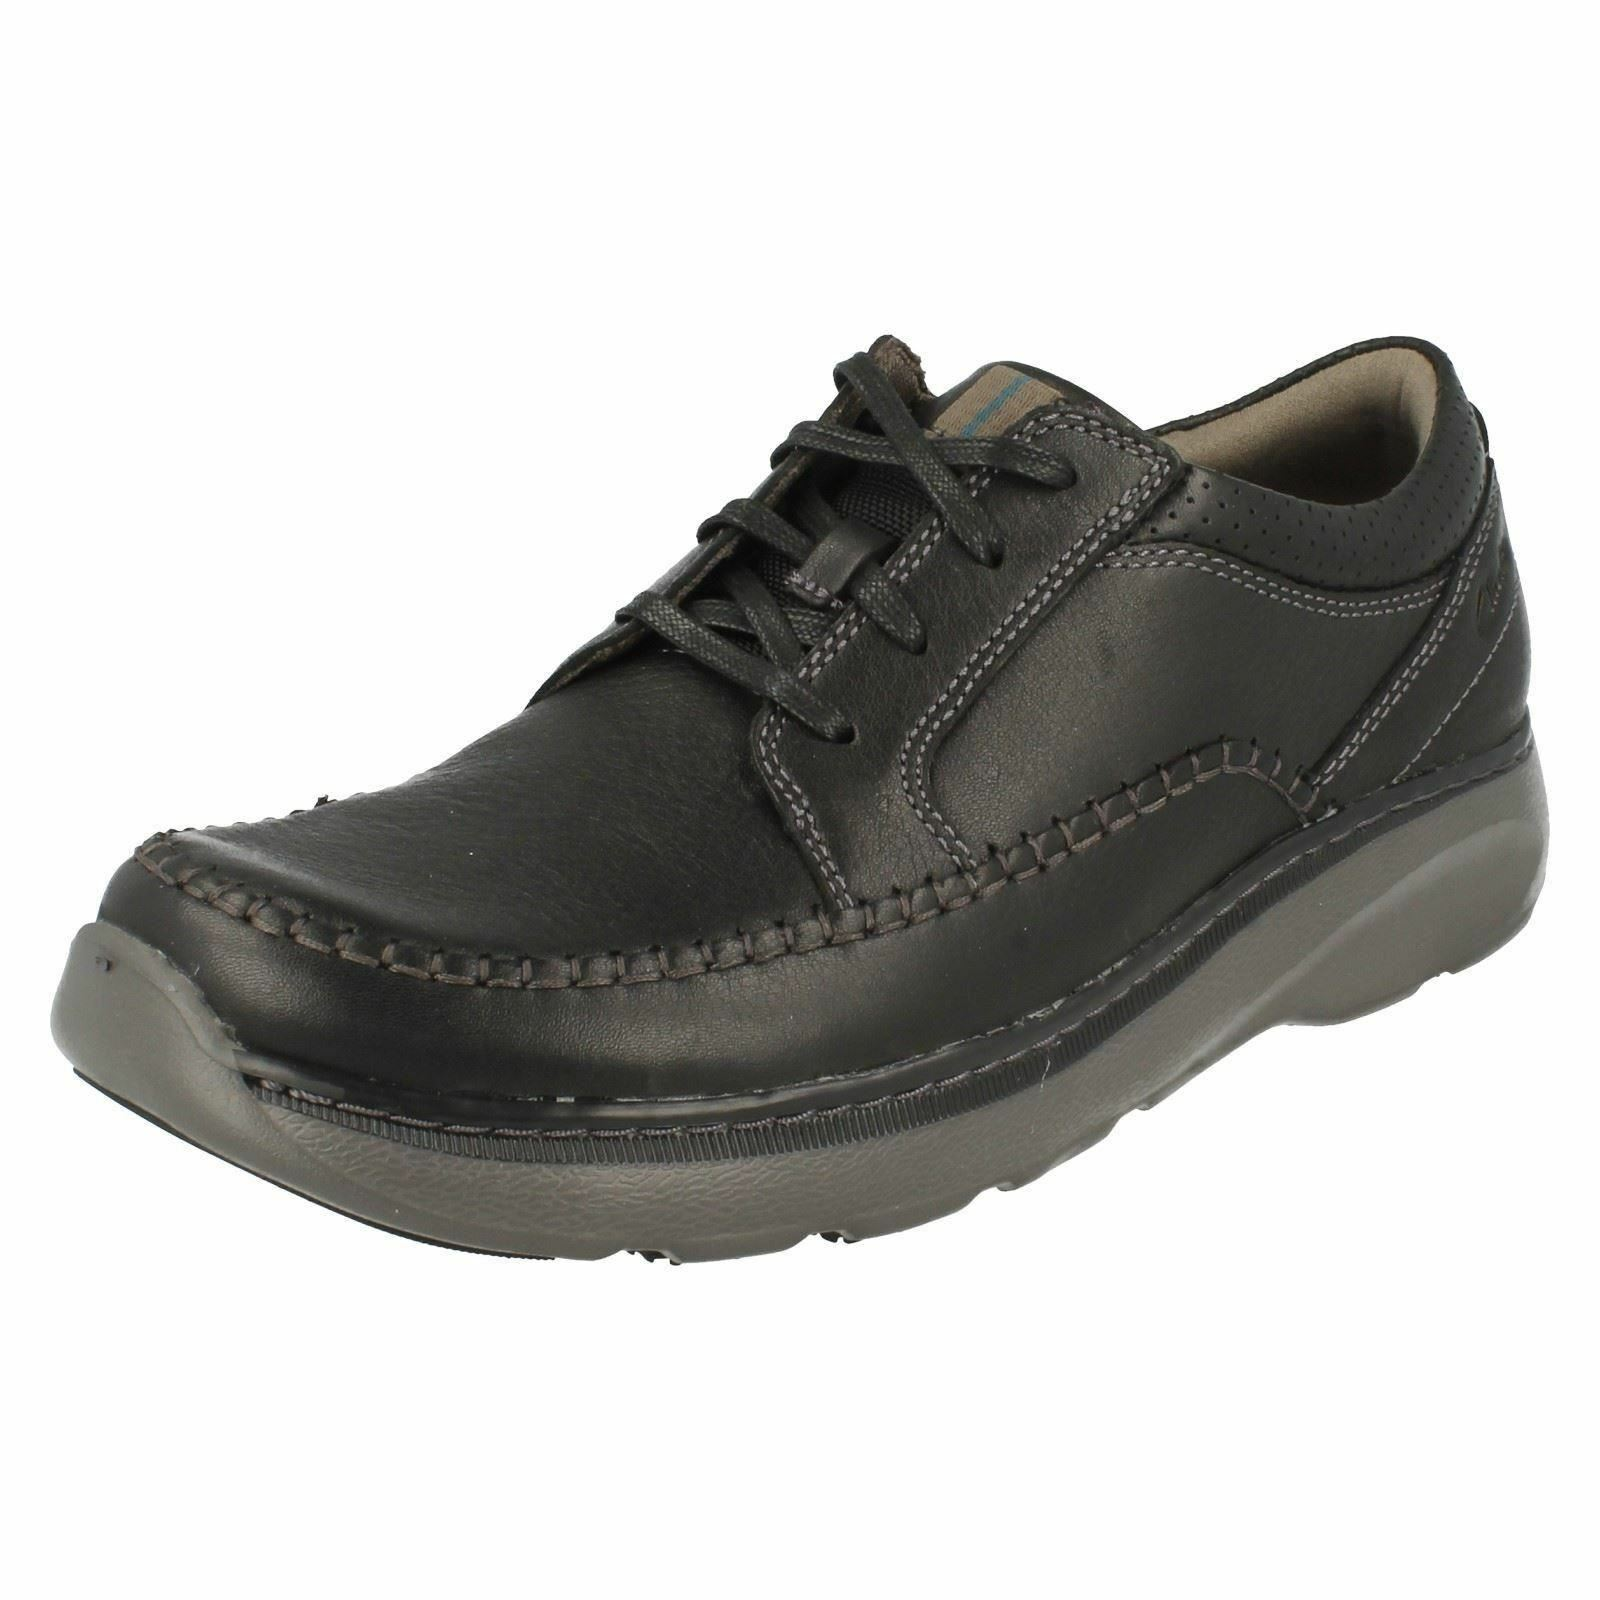 MENS CLARKS CHARTON VIBE BLACK LEATHER LACE